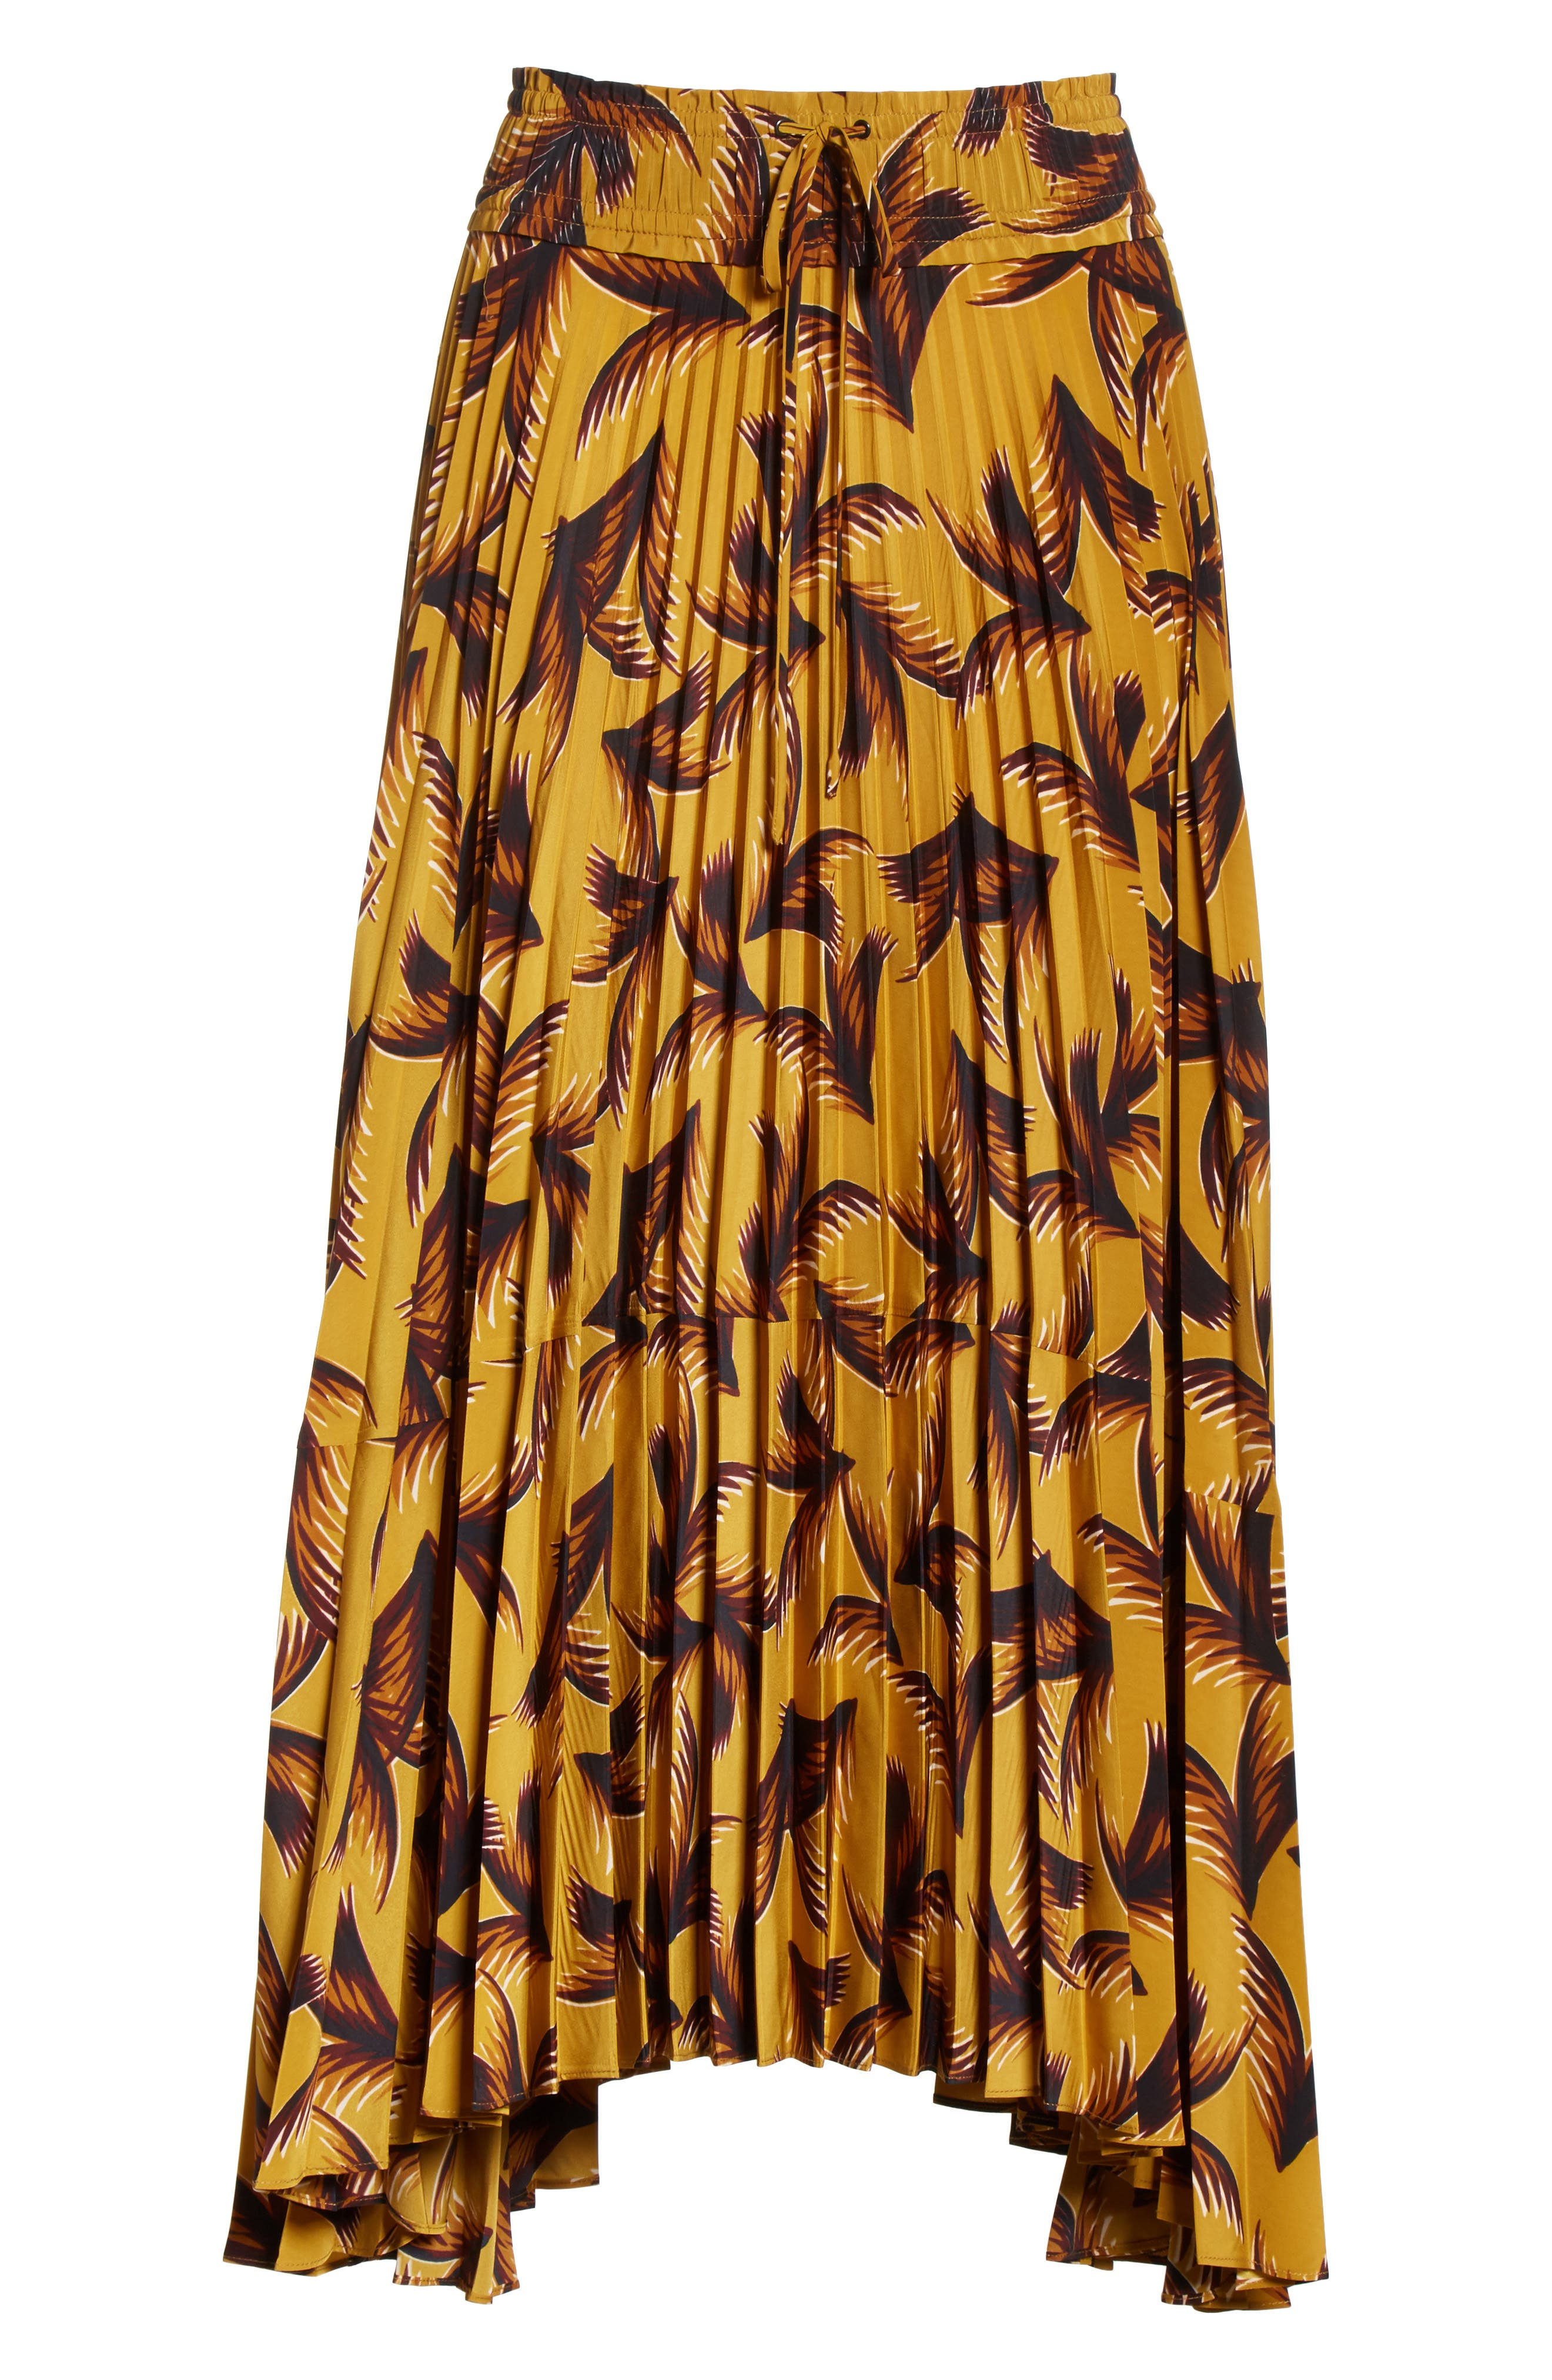 Maya Pleated A-Line Skirt,                             Alternate thumbnail 7, color,                             Gold